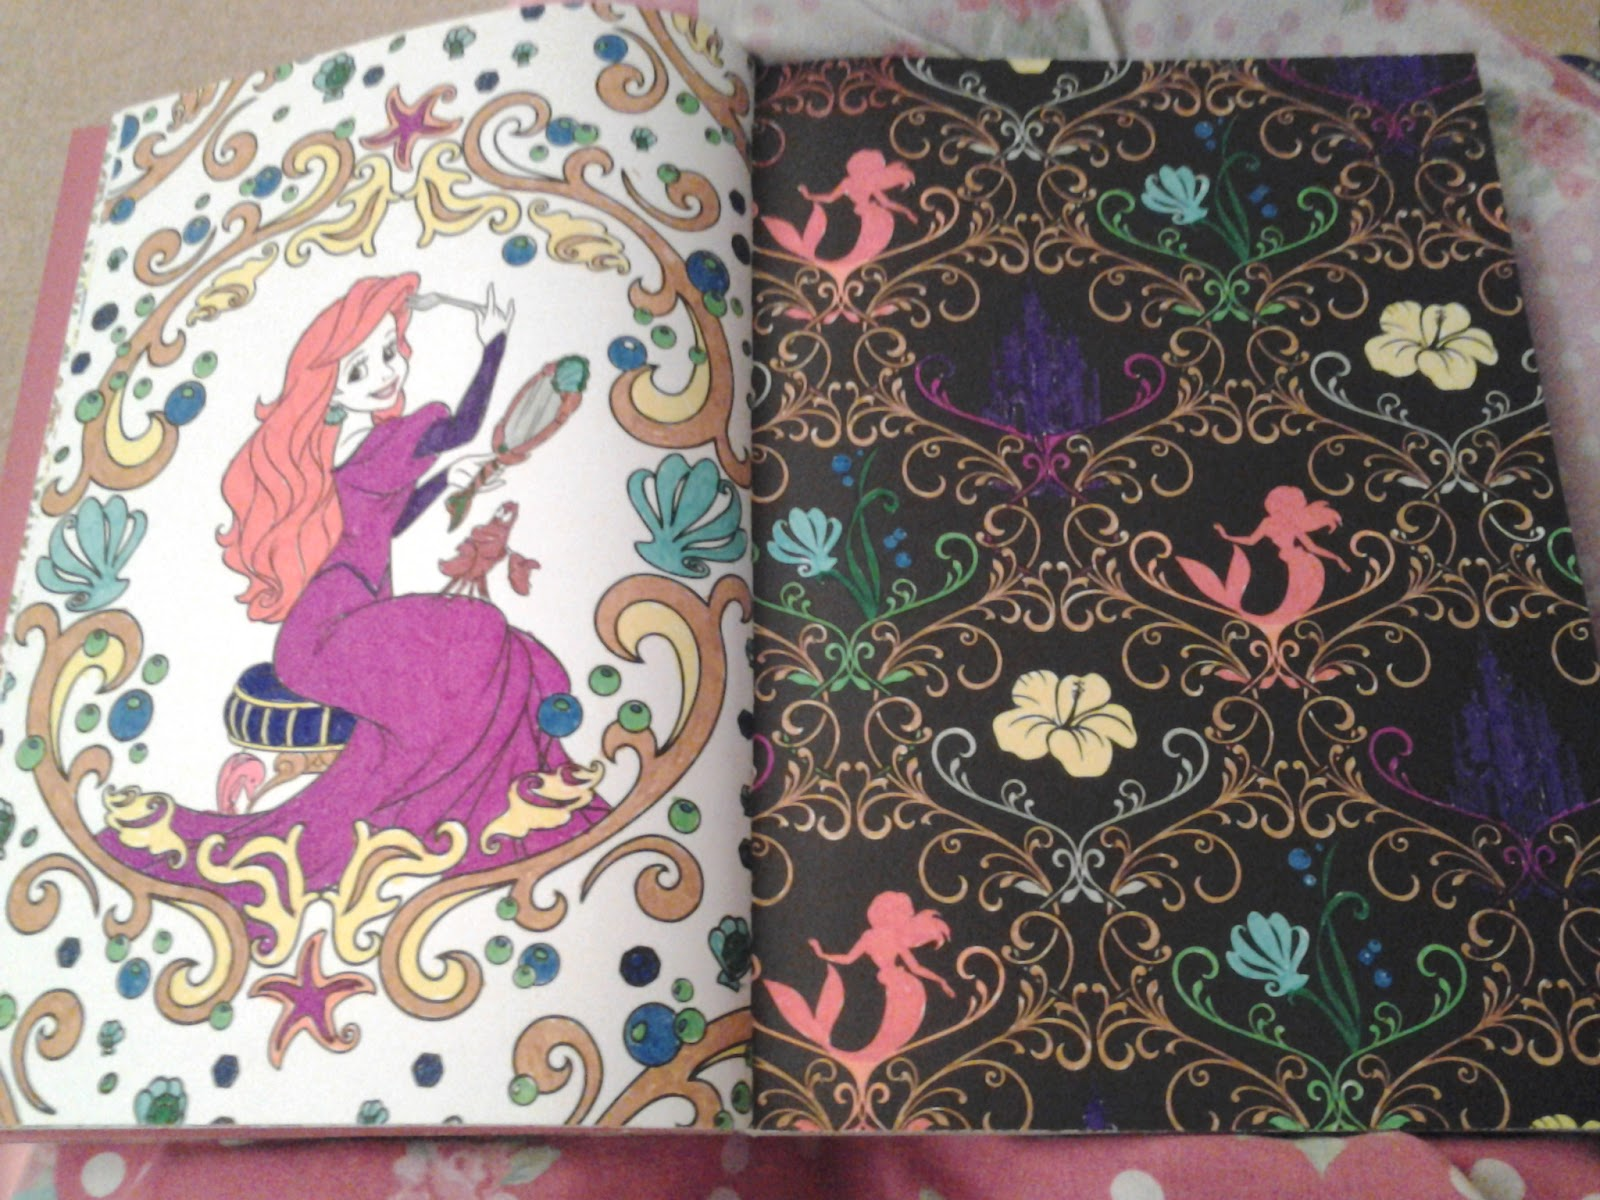 Since I Watched Disneys The Little Mermaid This Weekend It Was Appropriate That Finished Colouring These Pages